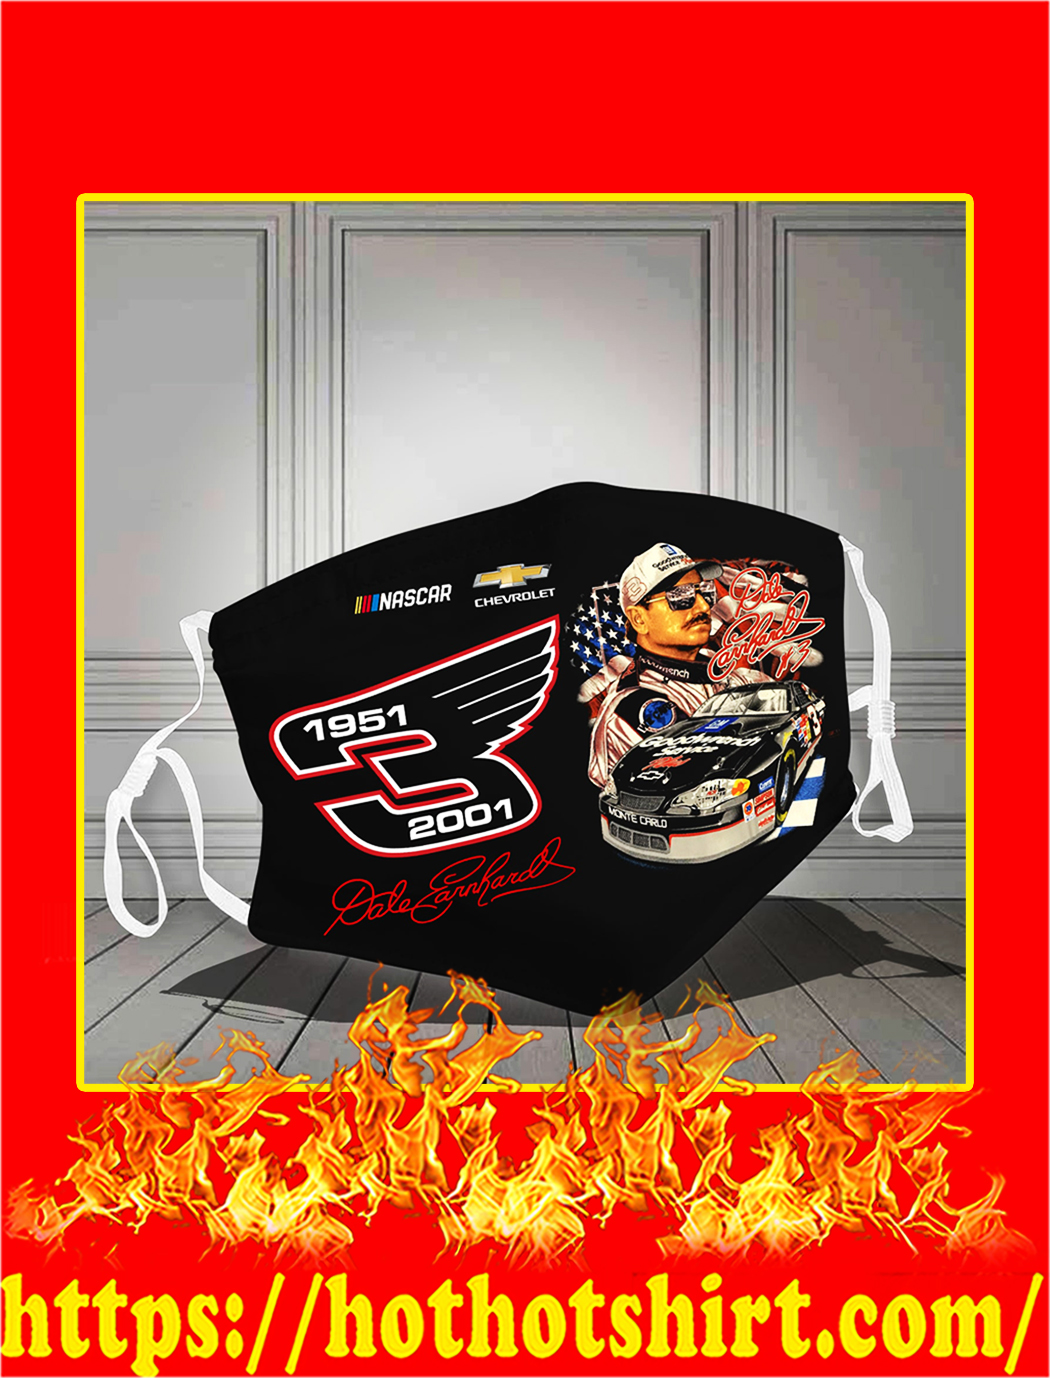 Dale earnhardt 1951 2001 face mask- pic 1